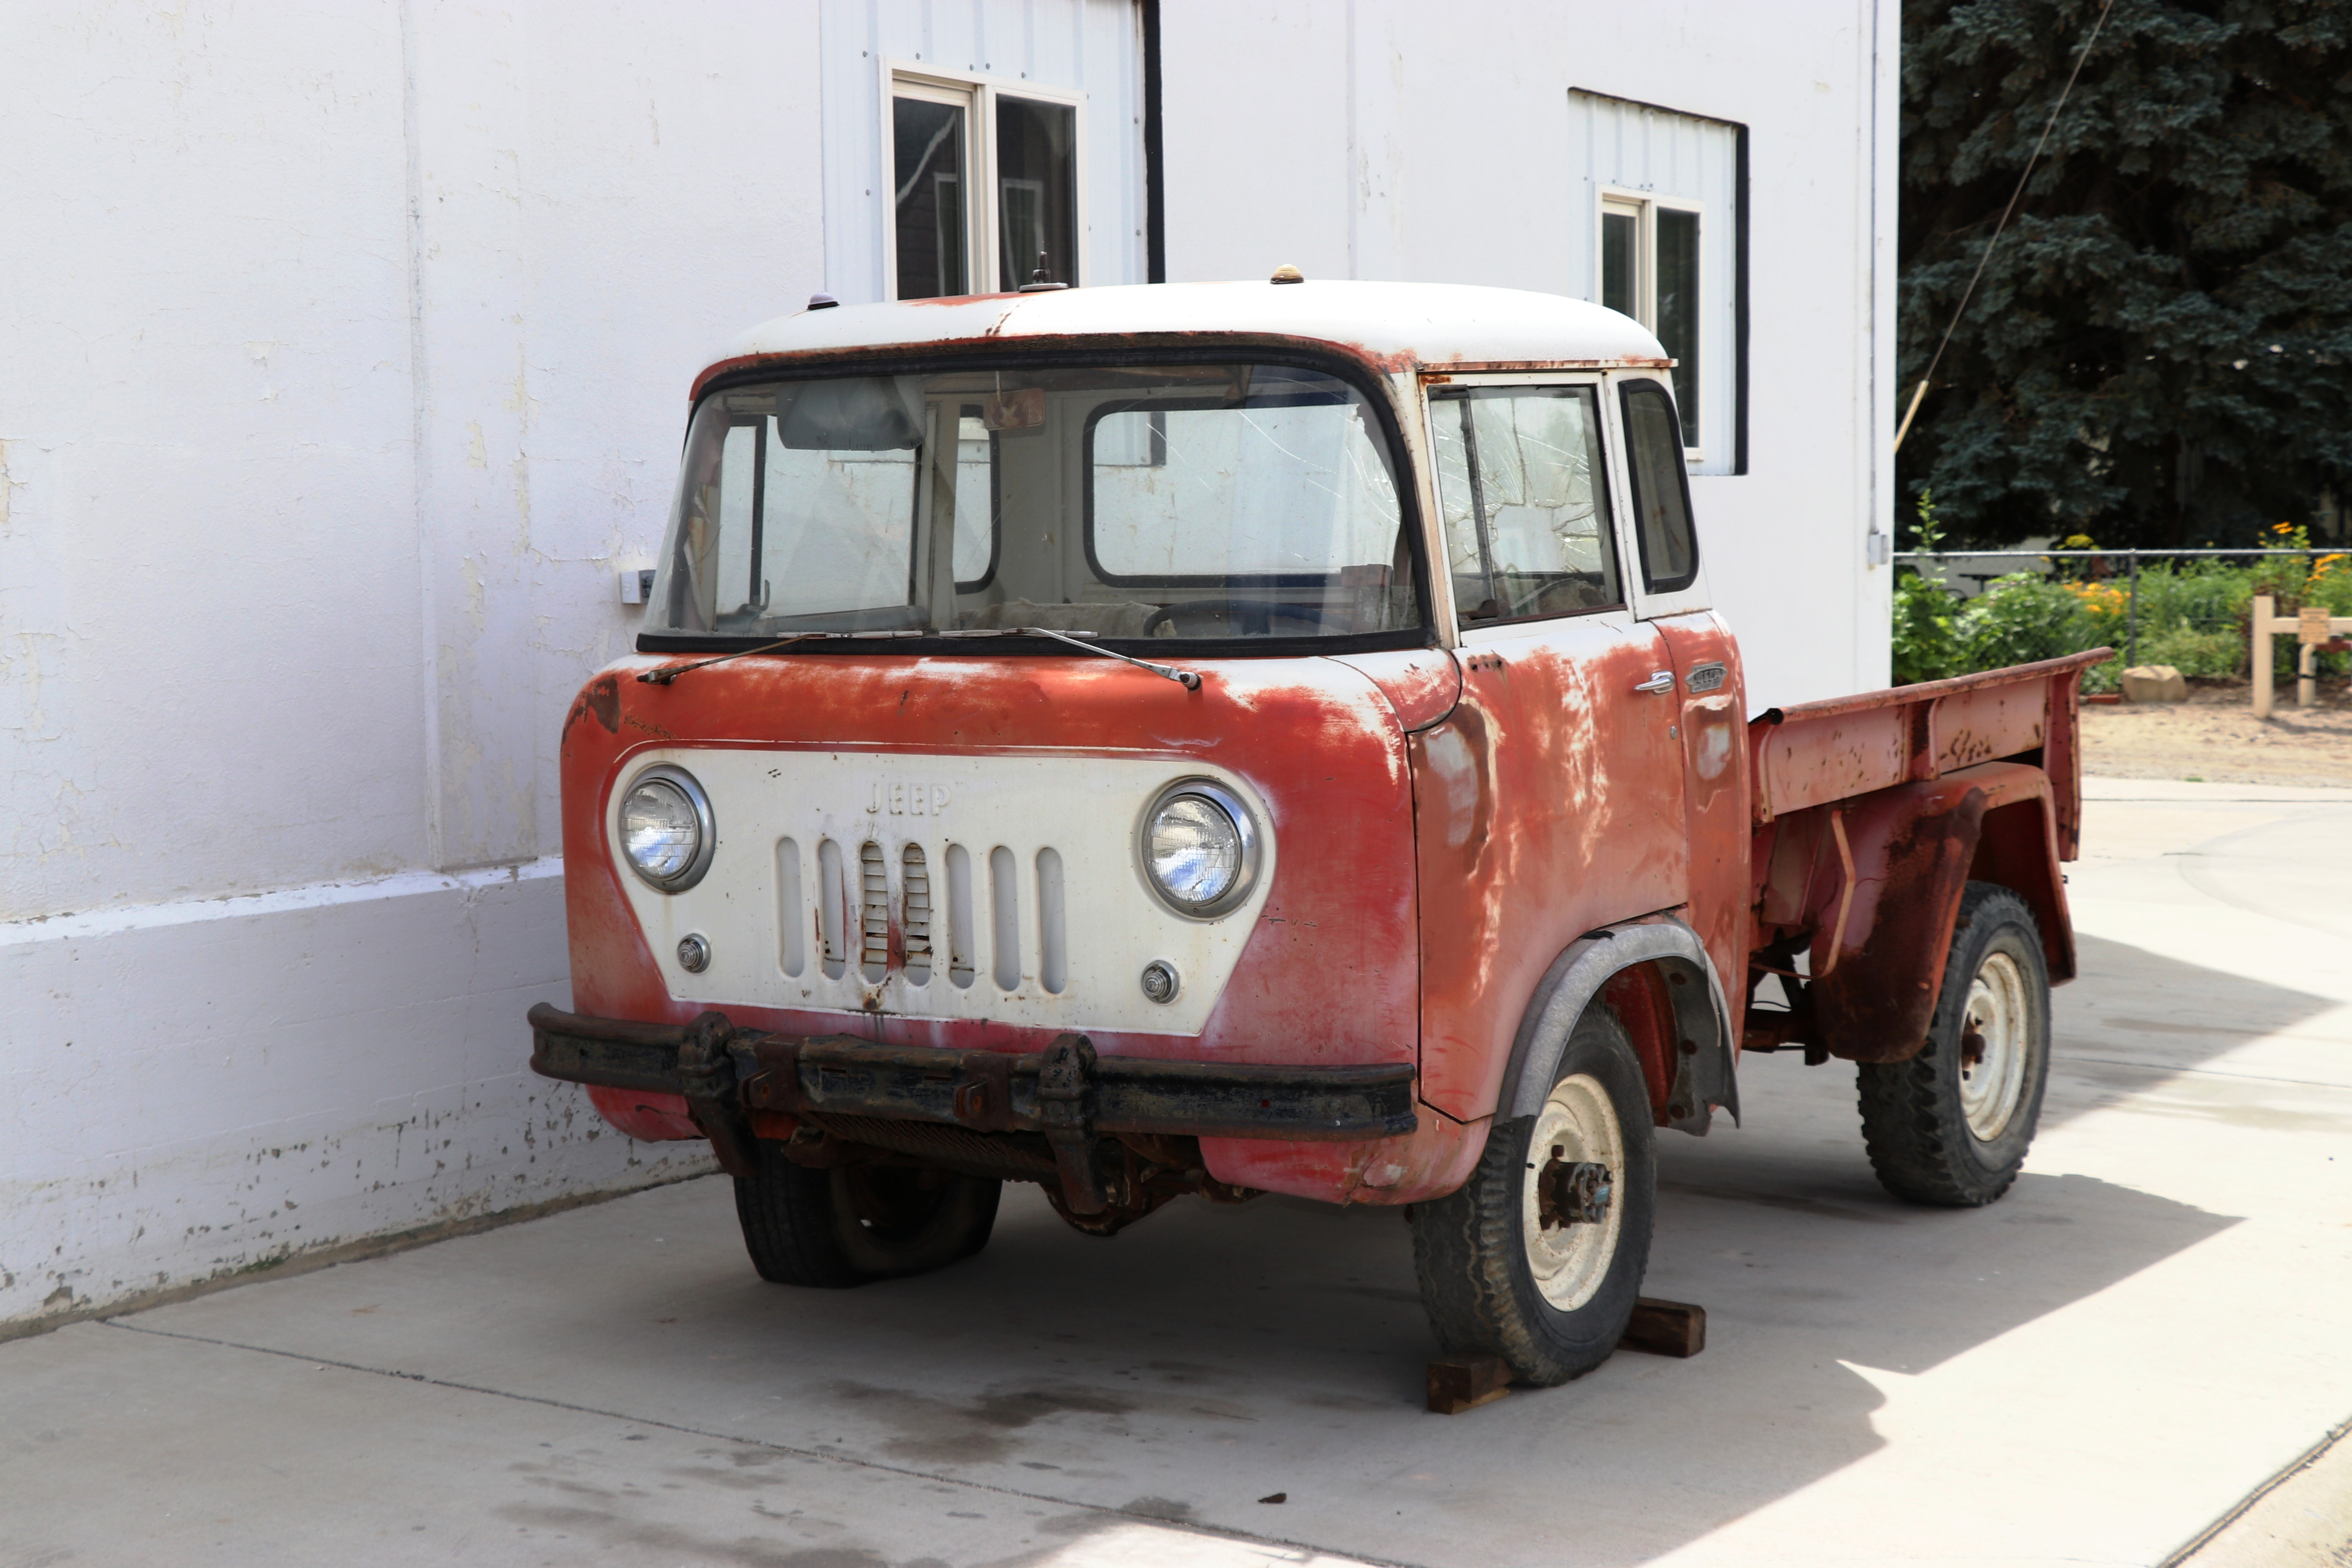 Watch The Complete Restoration Of This Classic Willys Fc 150 Jeep Concept Truck To Be Enjoyed For Years Come But Before We Delve Into Tear Down And Rebuild Well Share A Touch History Behind Forward Control